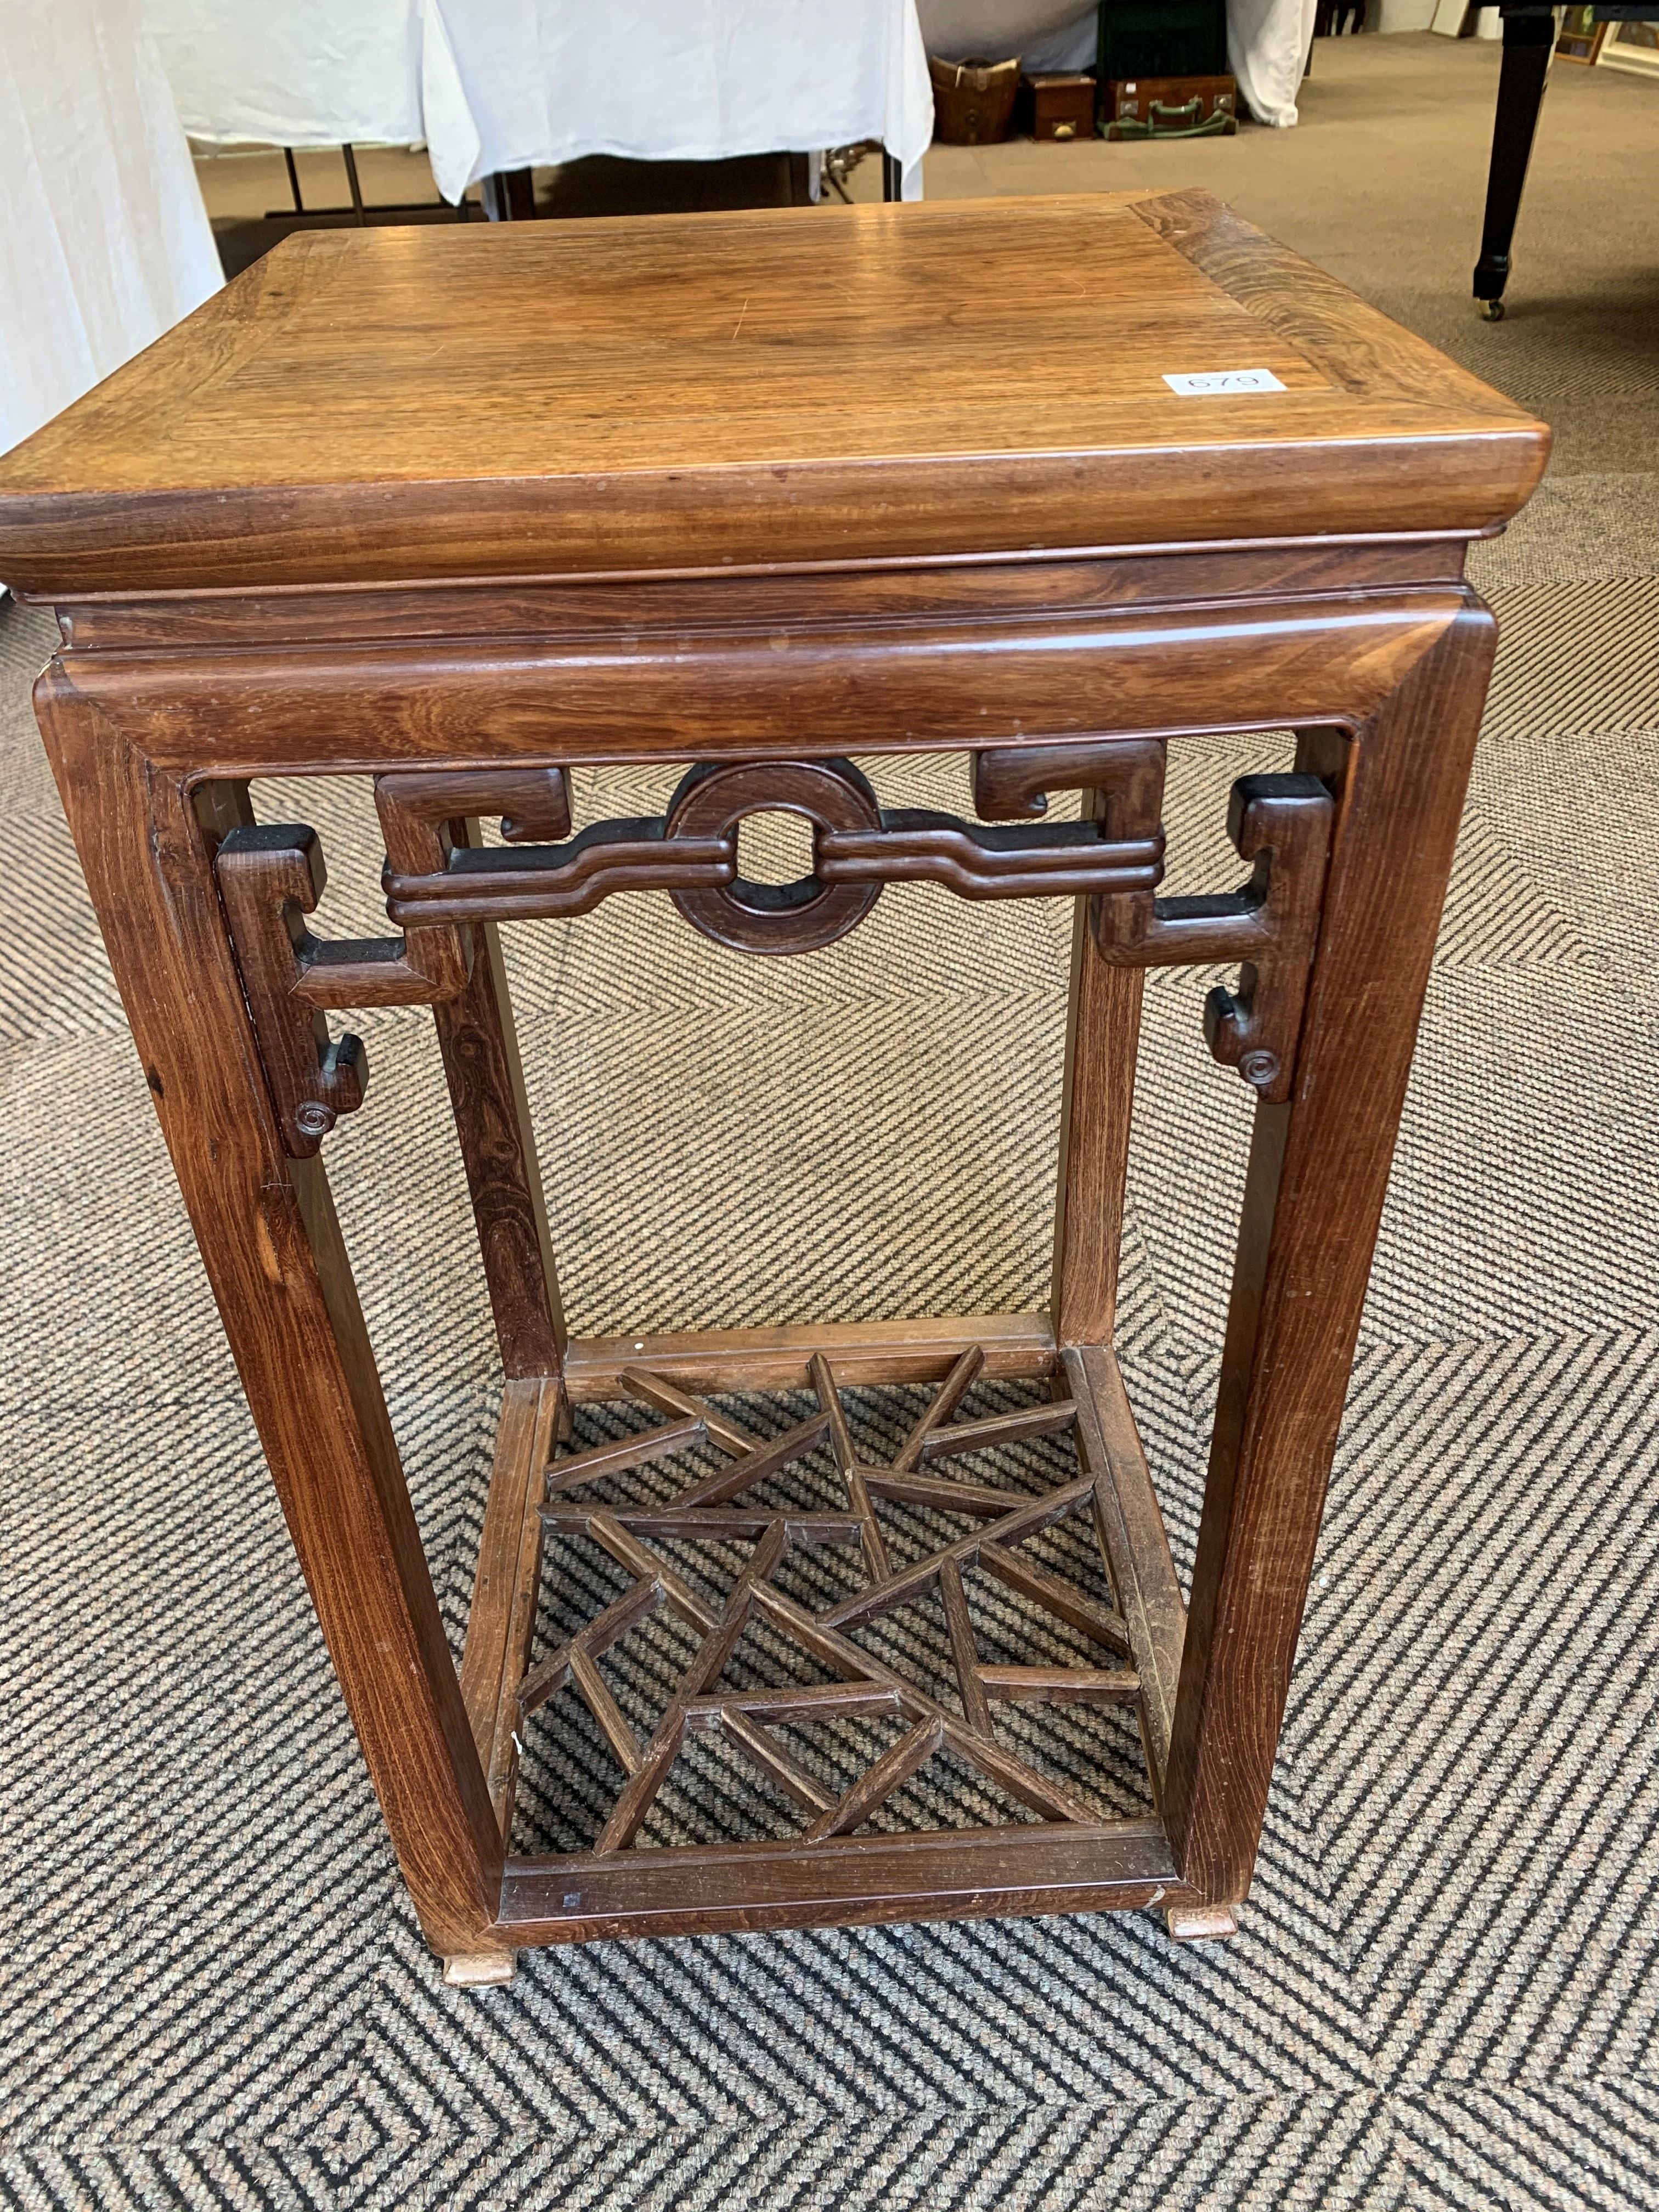 Chinese hardwood jardiniere stand, square topped raised on four legs united by cross stretchers, - Image 4 of 6